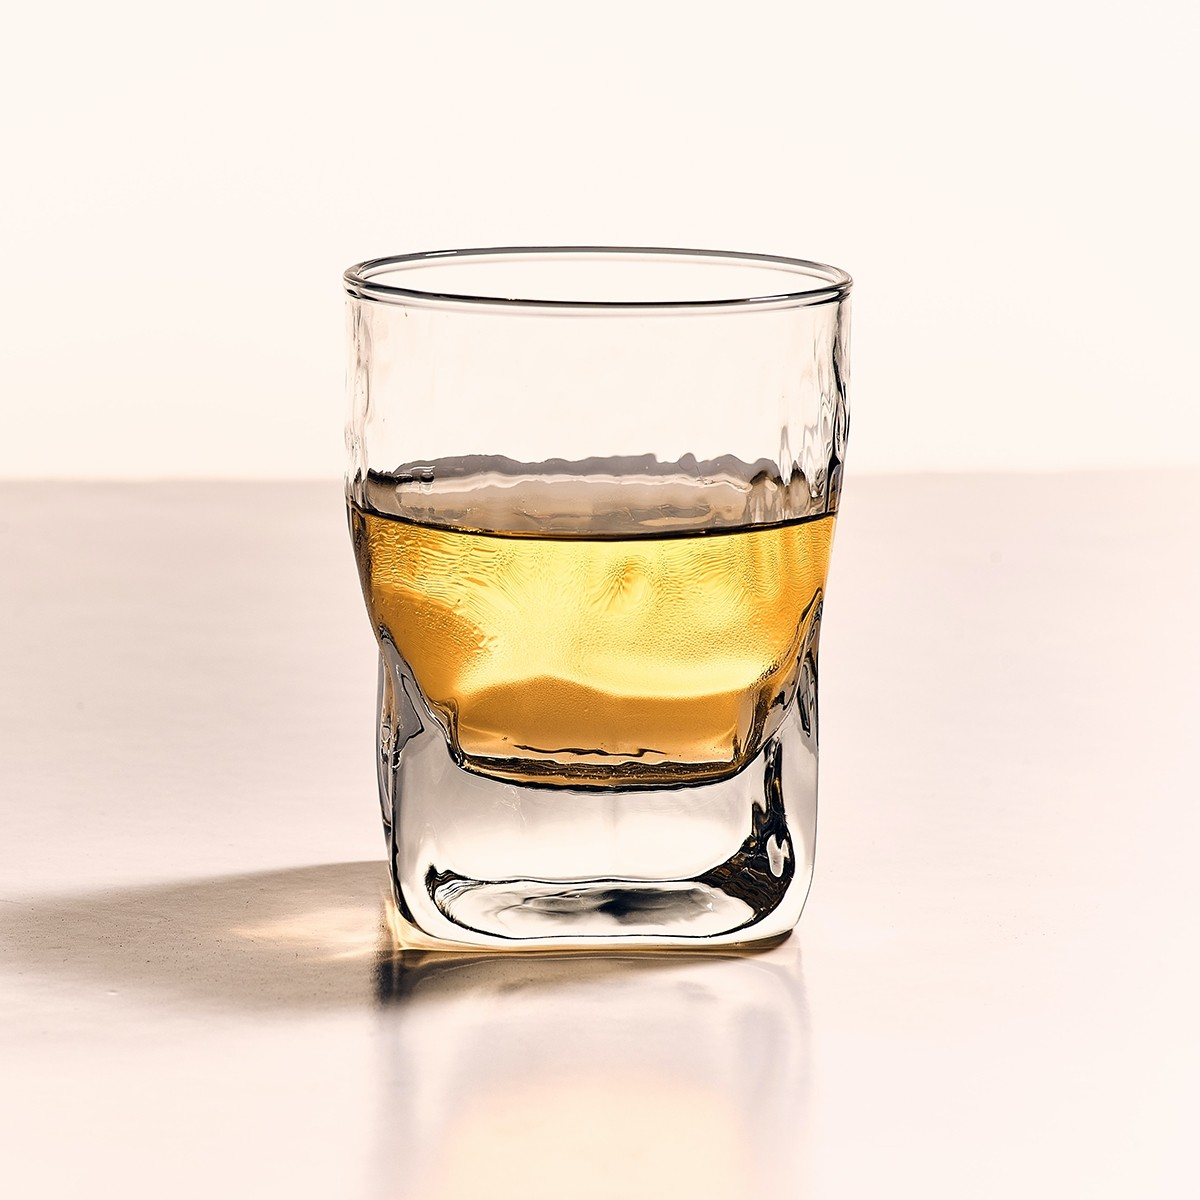 golden alcoholic spirit in a glass on a clean beige surface